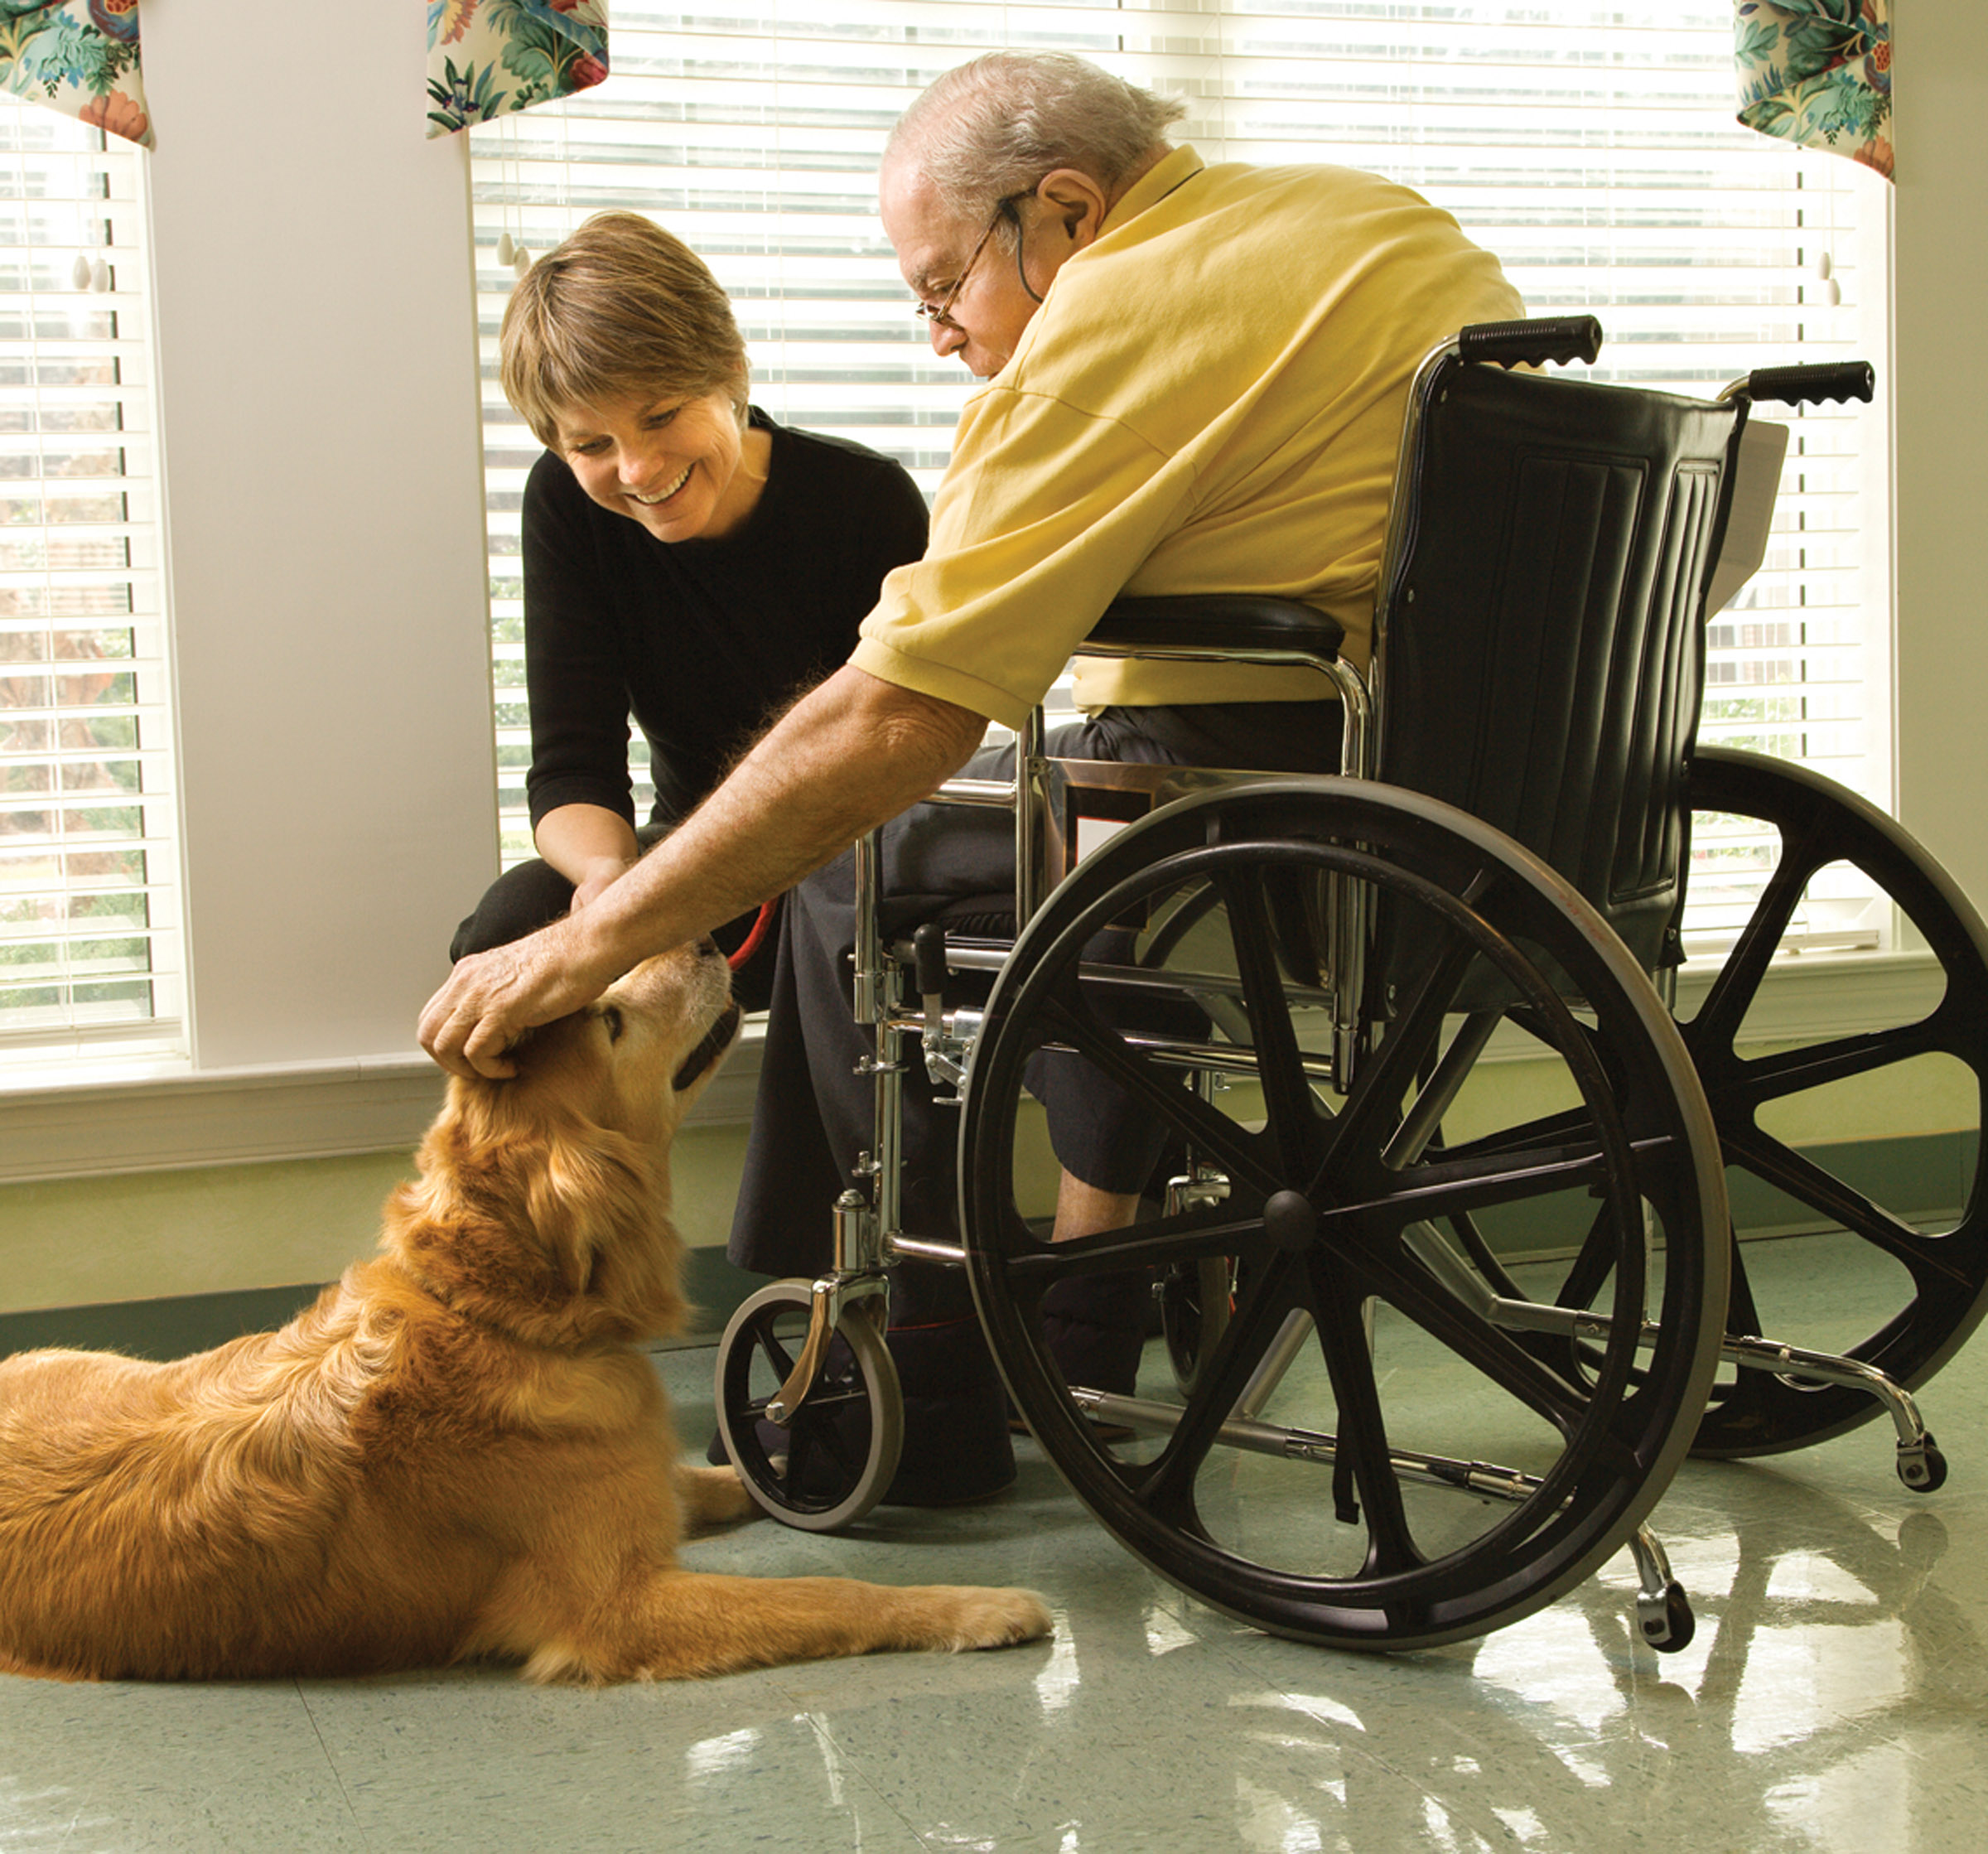 man_on_wheelchair_petting_dog.jpg